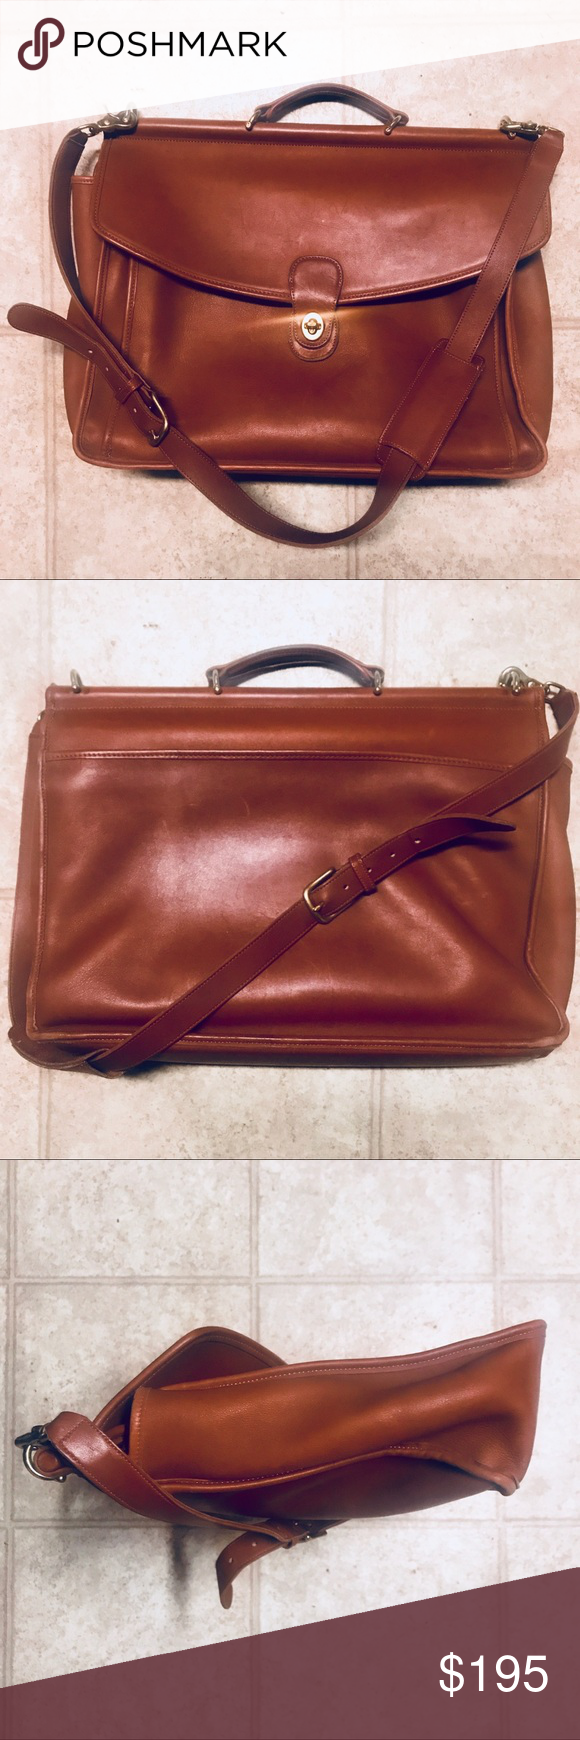 """a389aefd0be3 Coach Beekman Leather Briefcase Messenger Bag Vintage Coach Leather  """"Beekman"""" Briefcase Gently Loved Condition"""